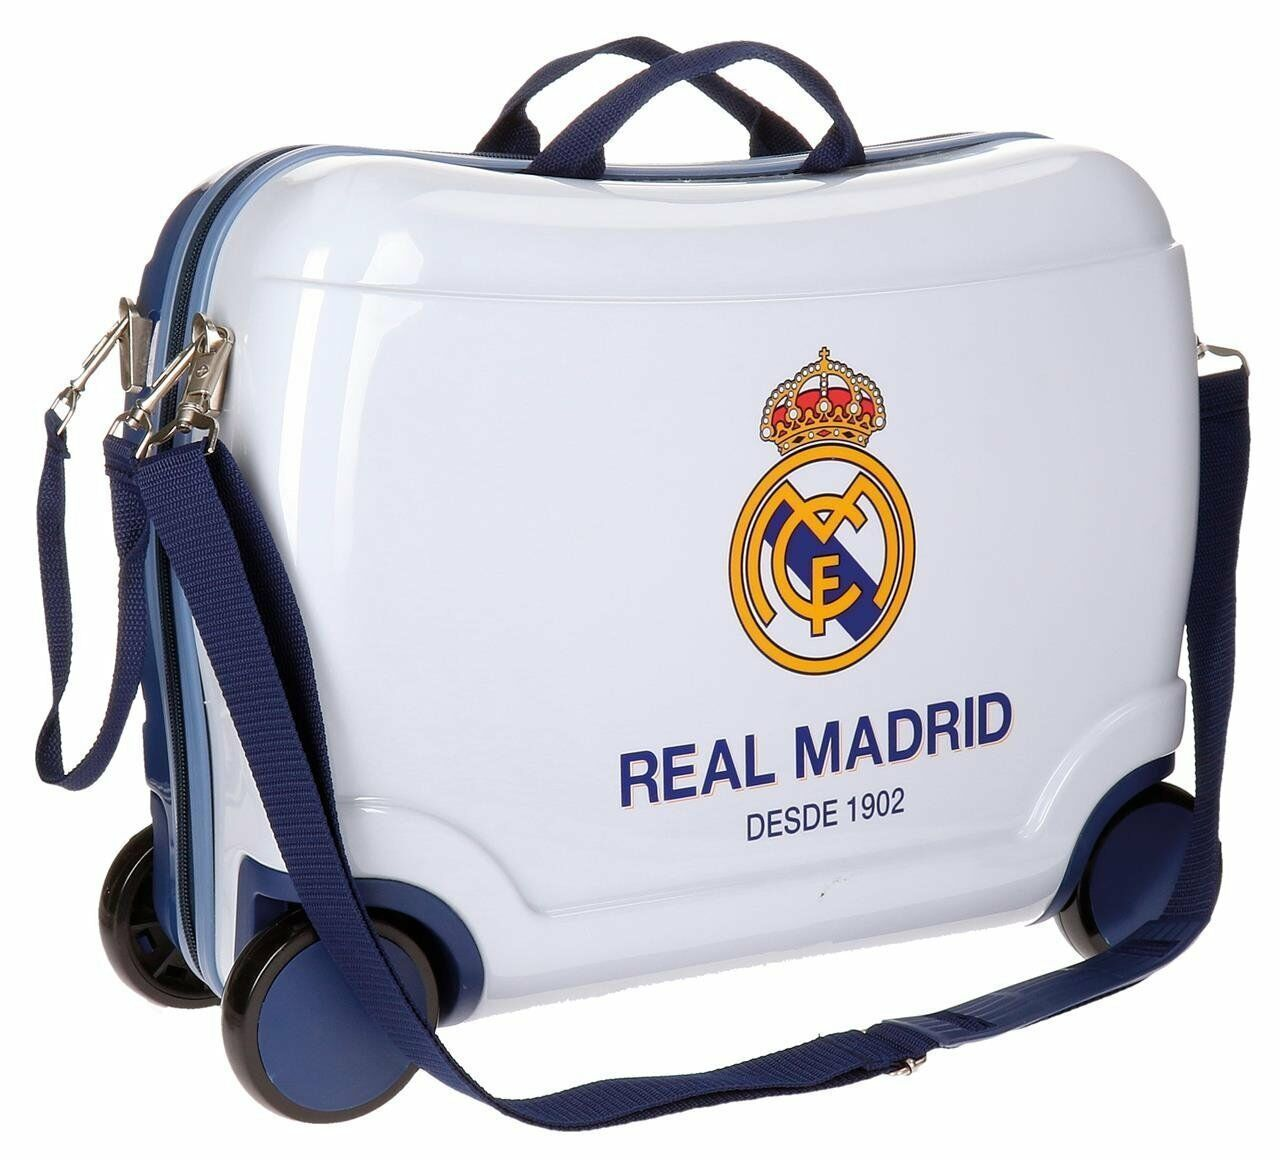 Valise Rigide Cabine Avion Roues Trolley Real Madrid ABS blanc bleu